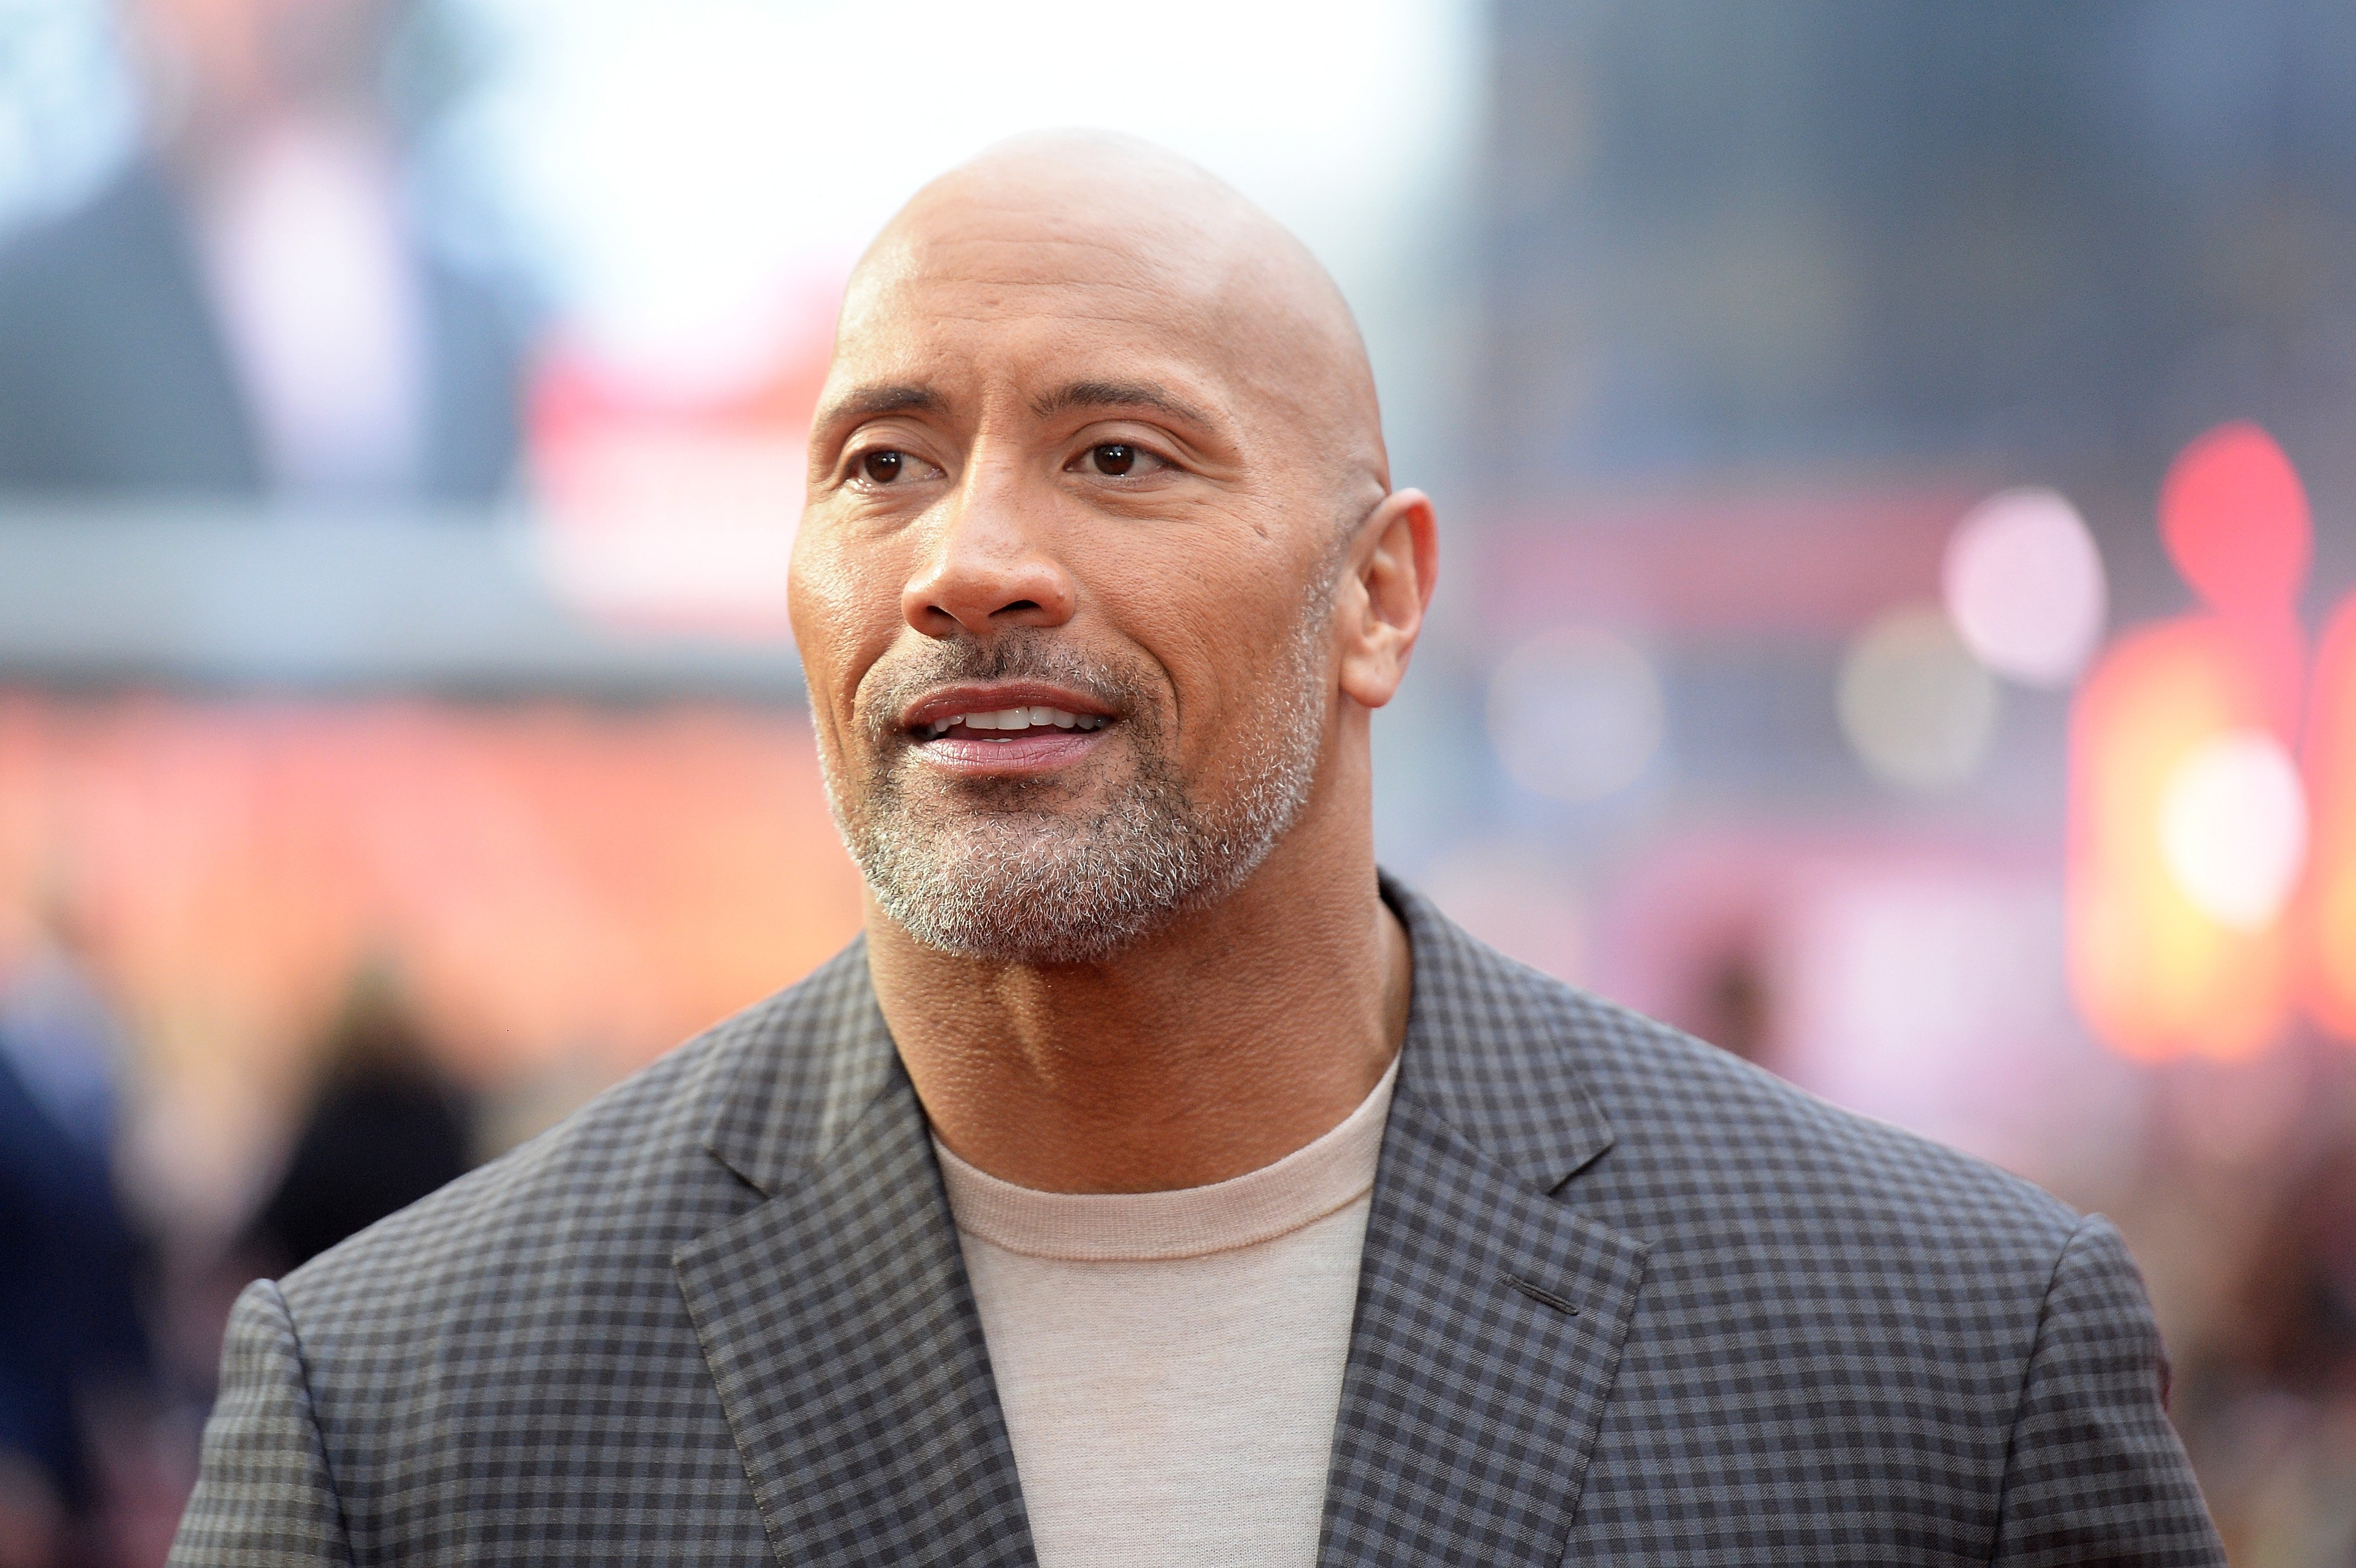 Dwayne Johnson attends the European Premiere of 'Rampage' at Cineworld Leicester Square on April 11, 2018 in London, England | Photo: Getty Images